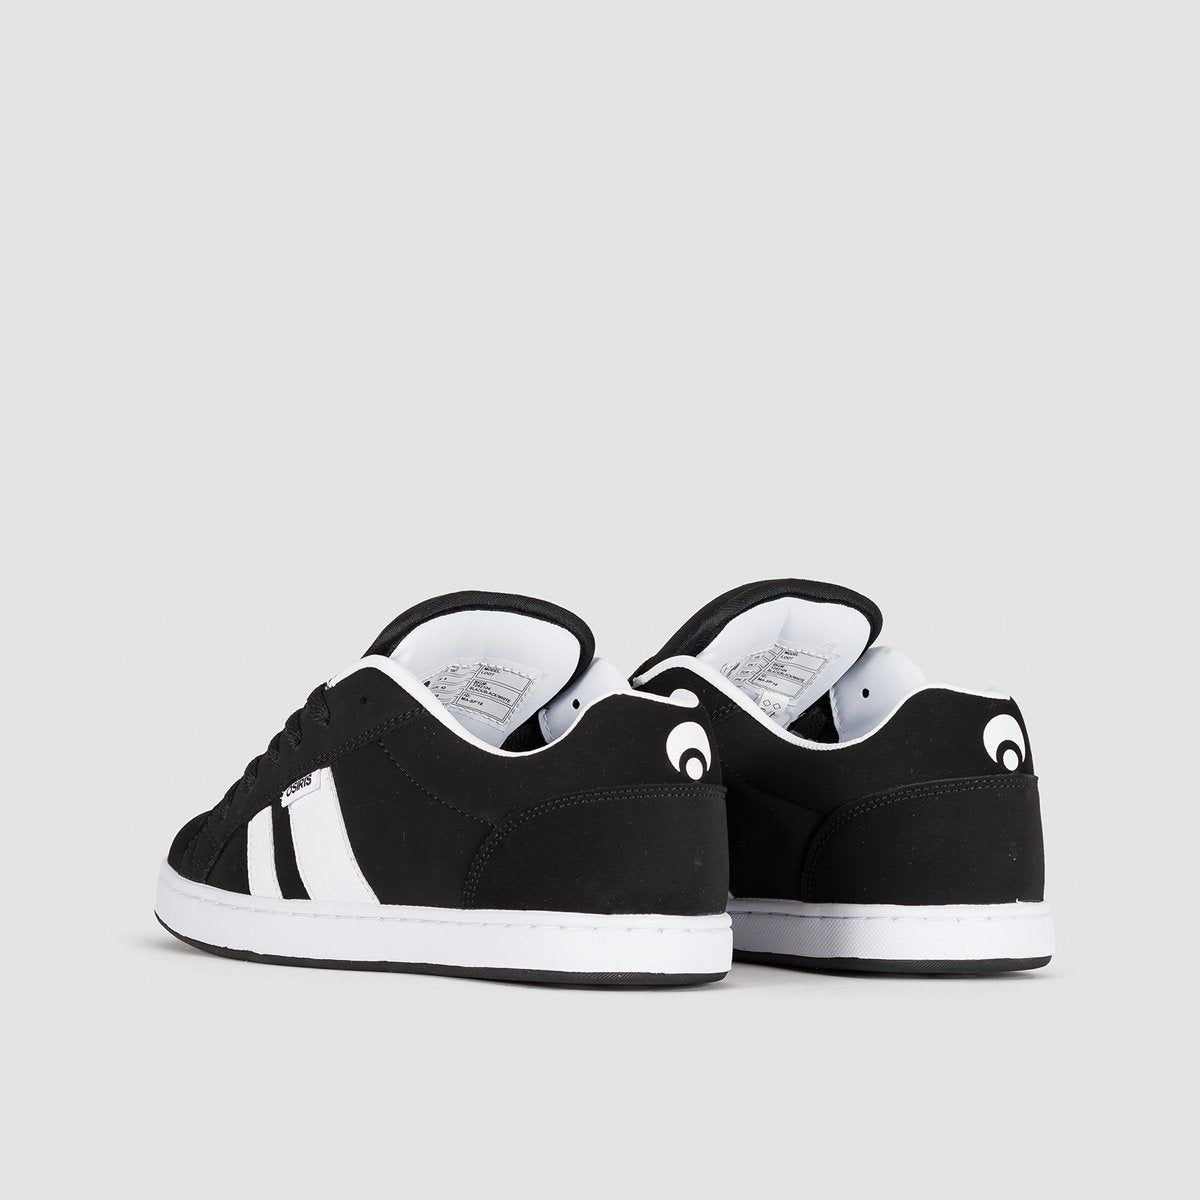 Osiris Loot Black/Black/White - Footwear